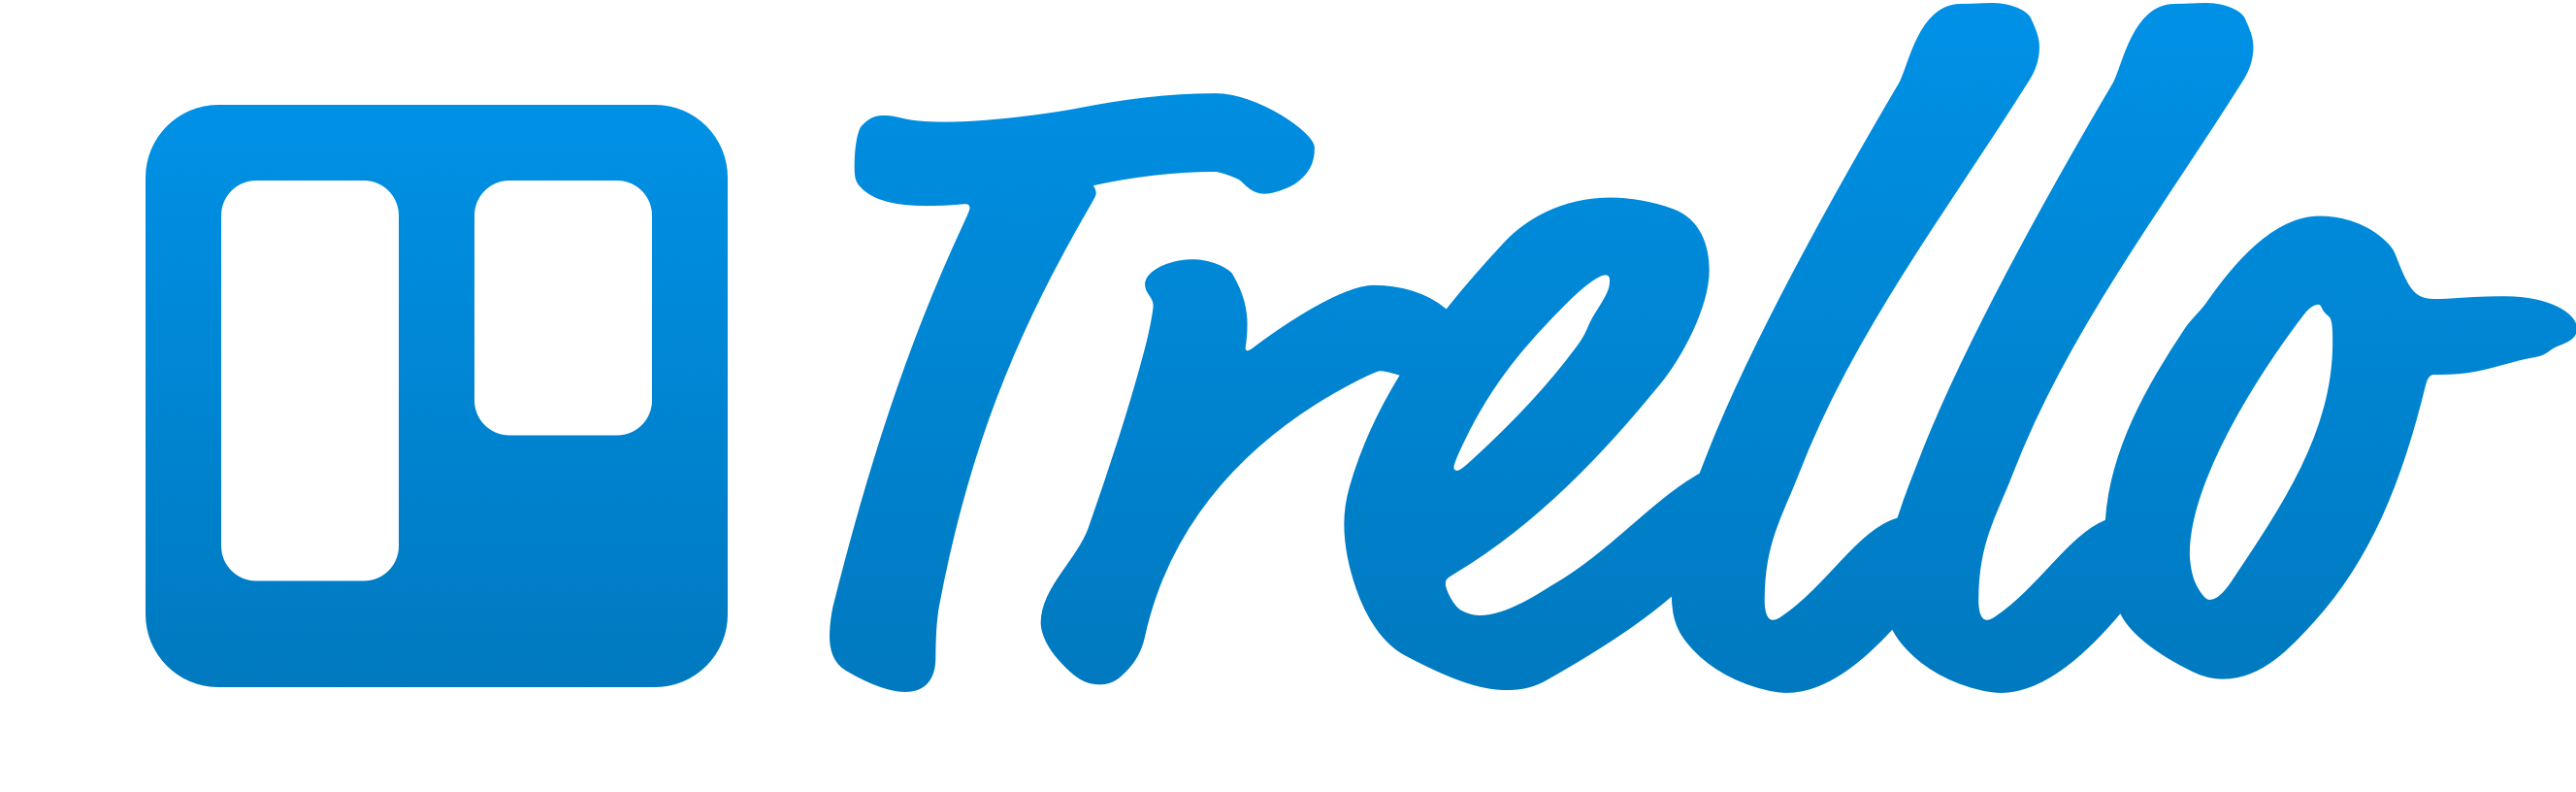 Image result for trello